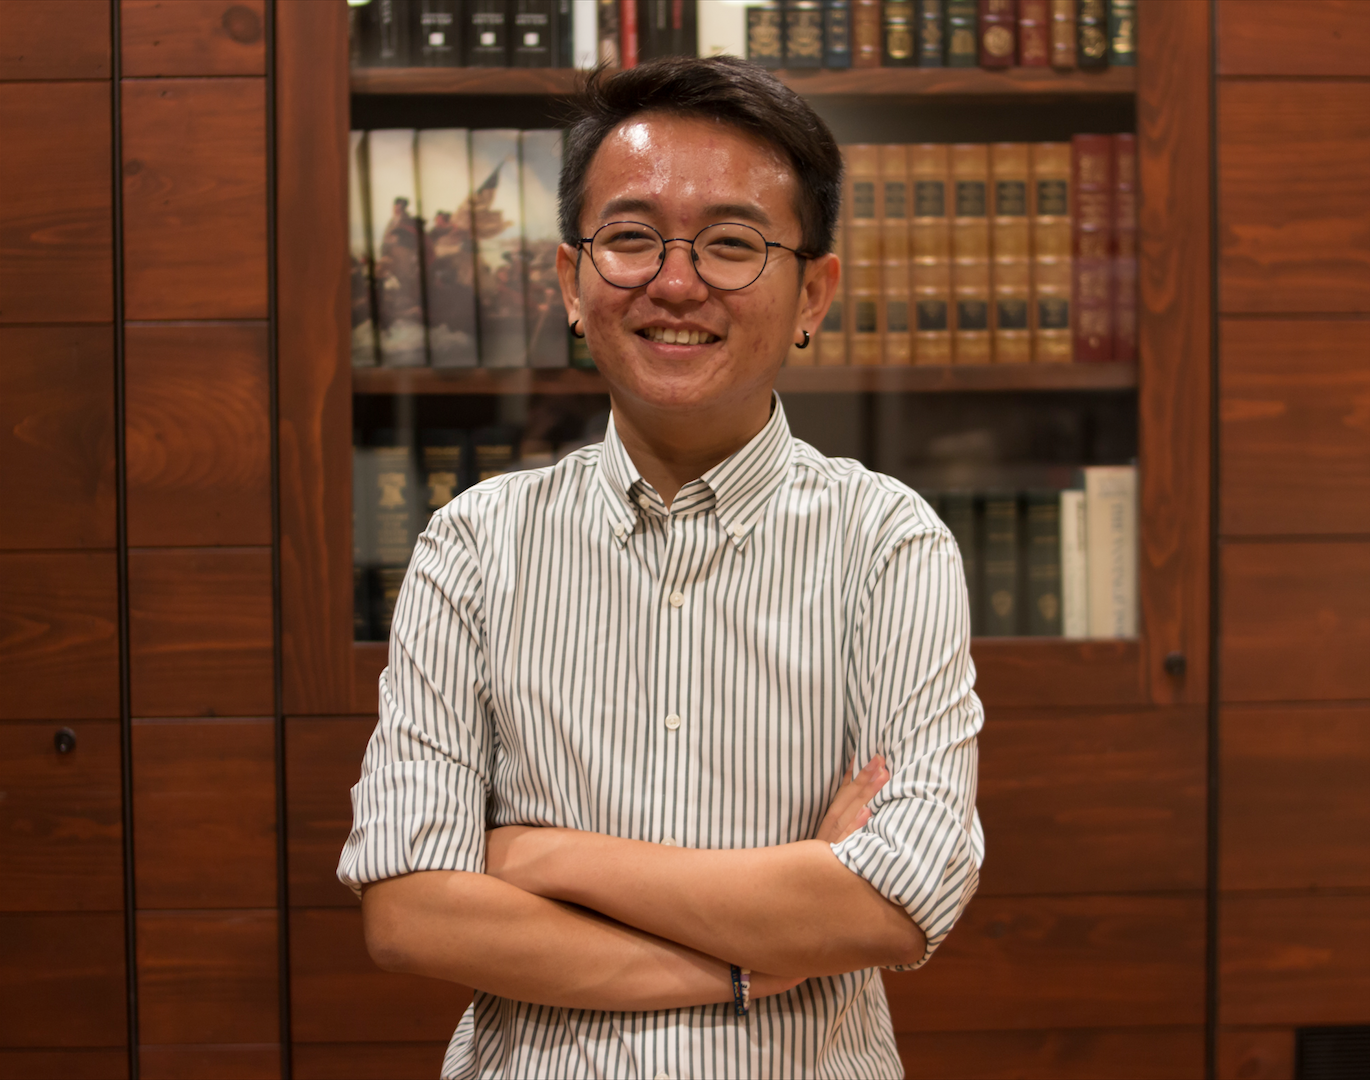 Thang Q. Diep '19 filed his marked-up Harvard application in court in an effort to help the University combat a lawsuit alleging it discriminates against Asian-American applicants.